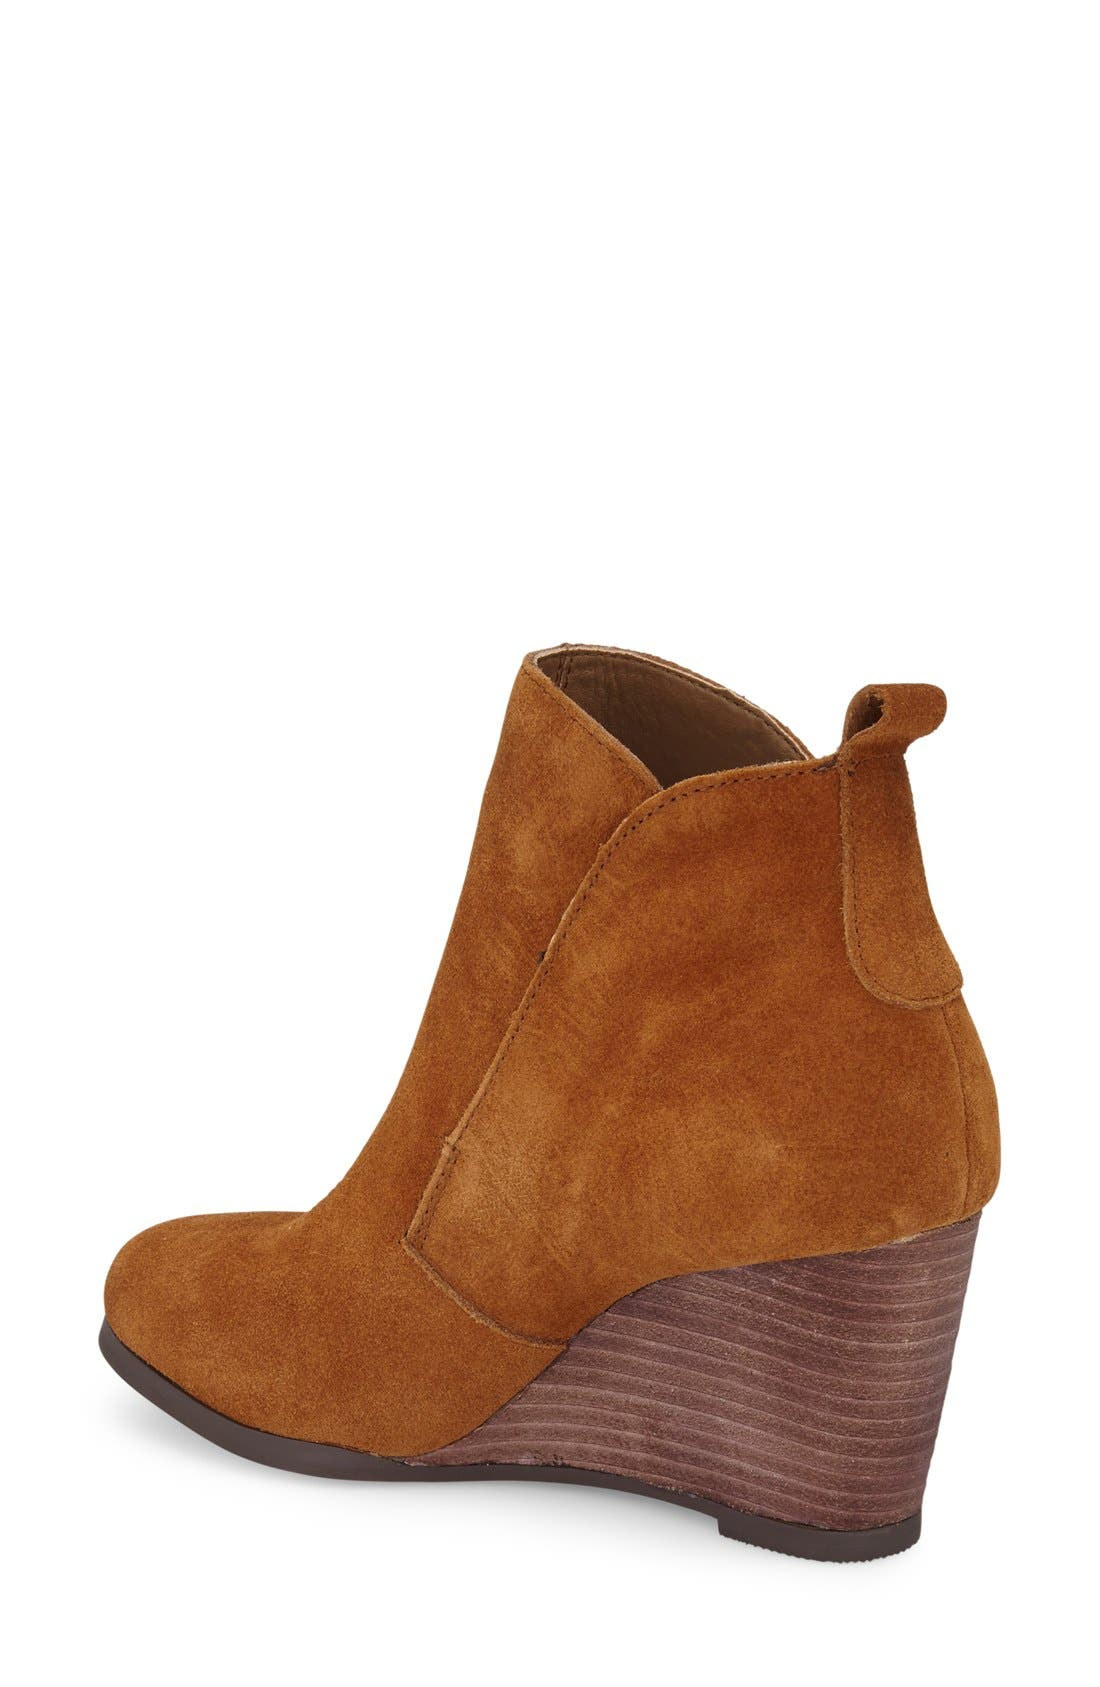 Alternate Image 2  - Sole Society Brigitte Wedge Bootie (Women)